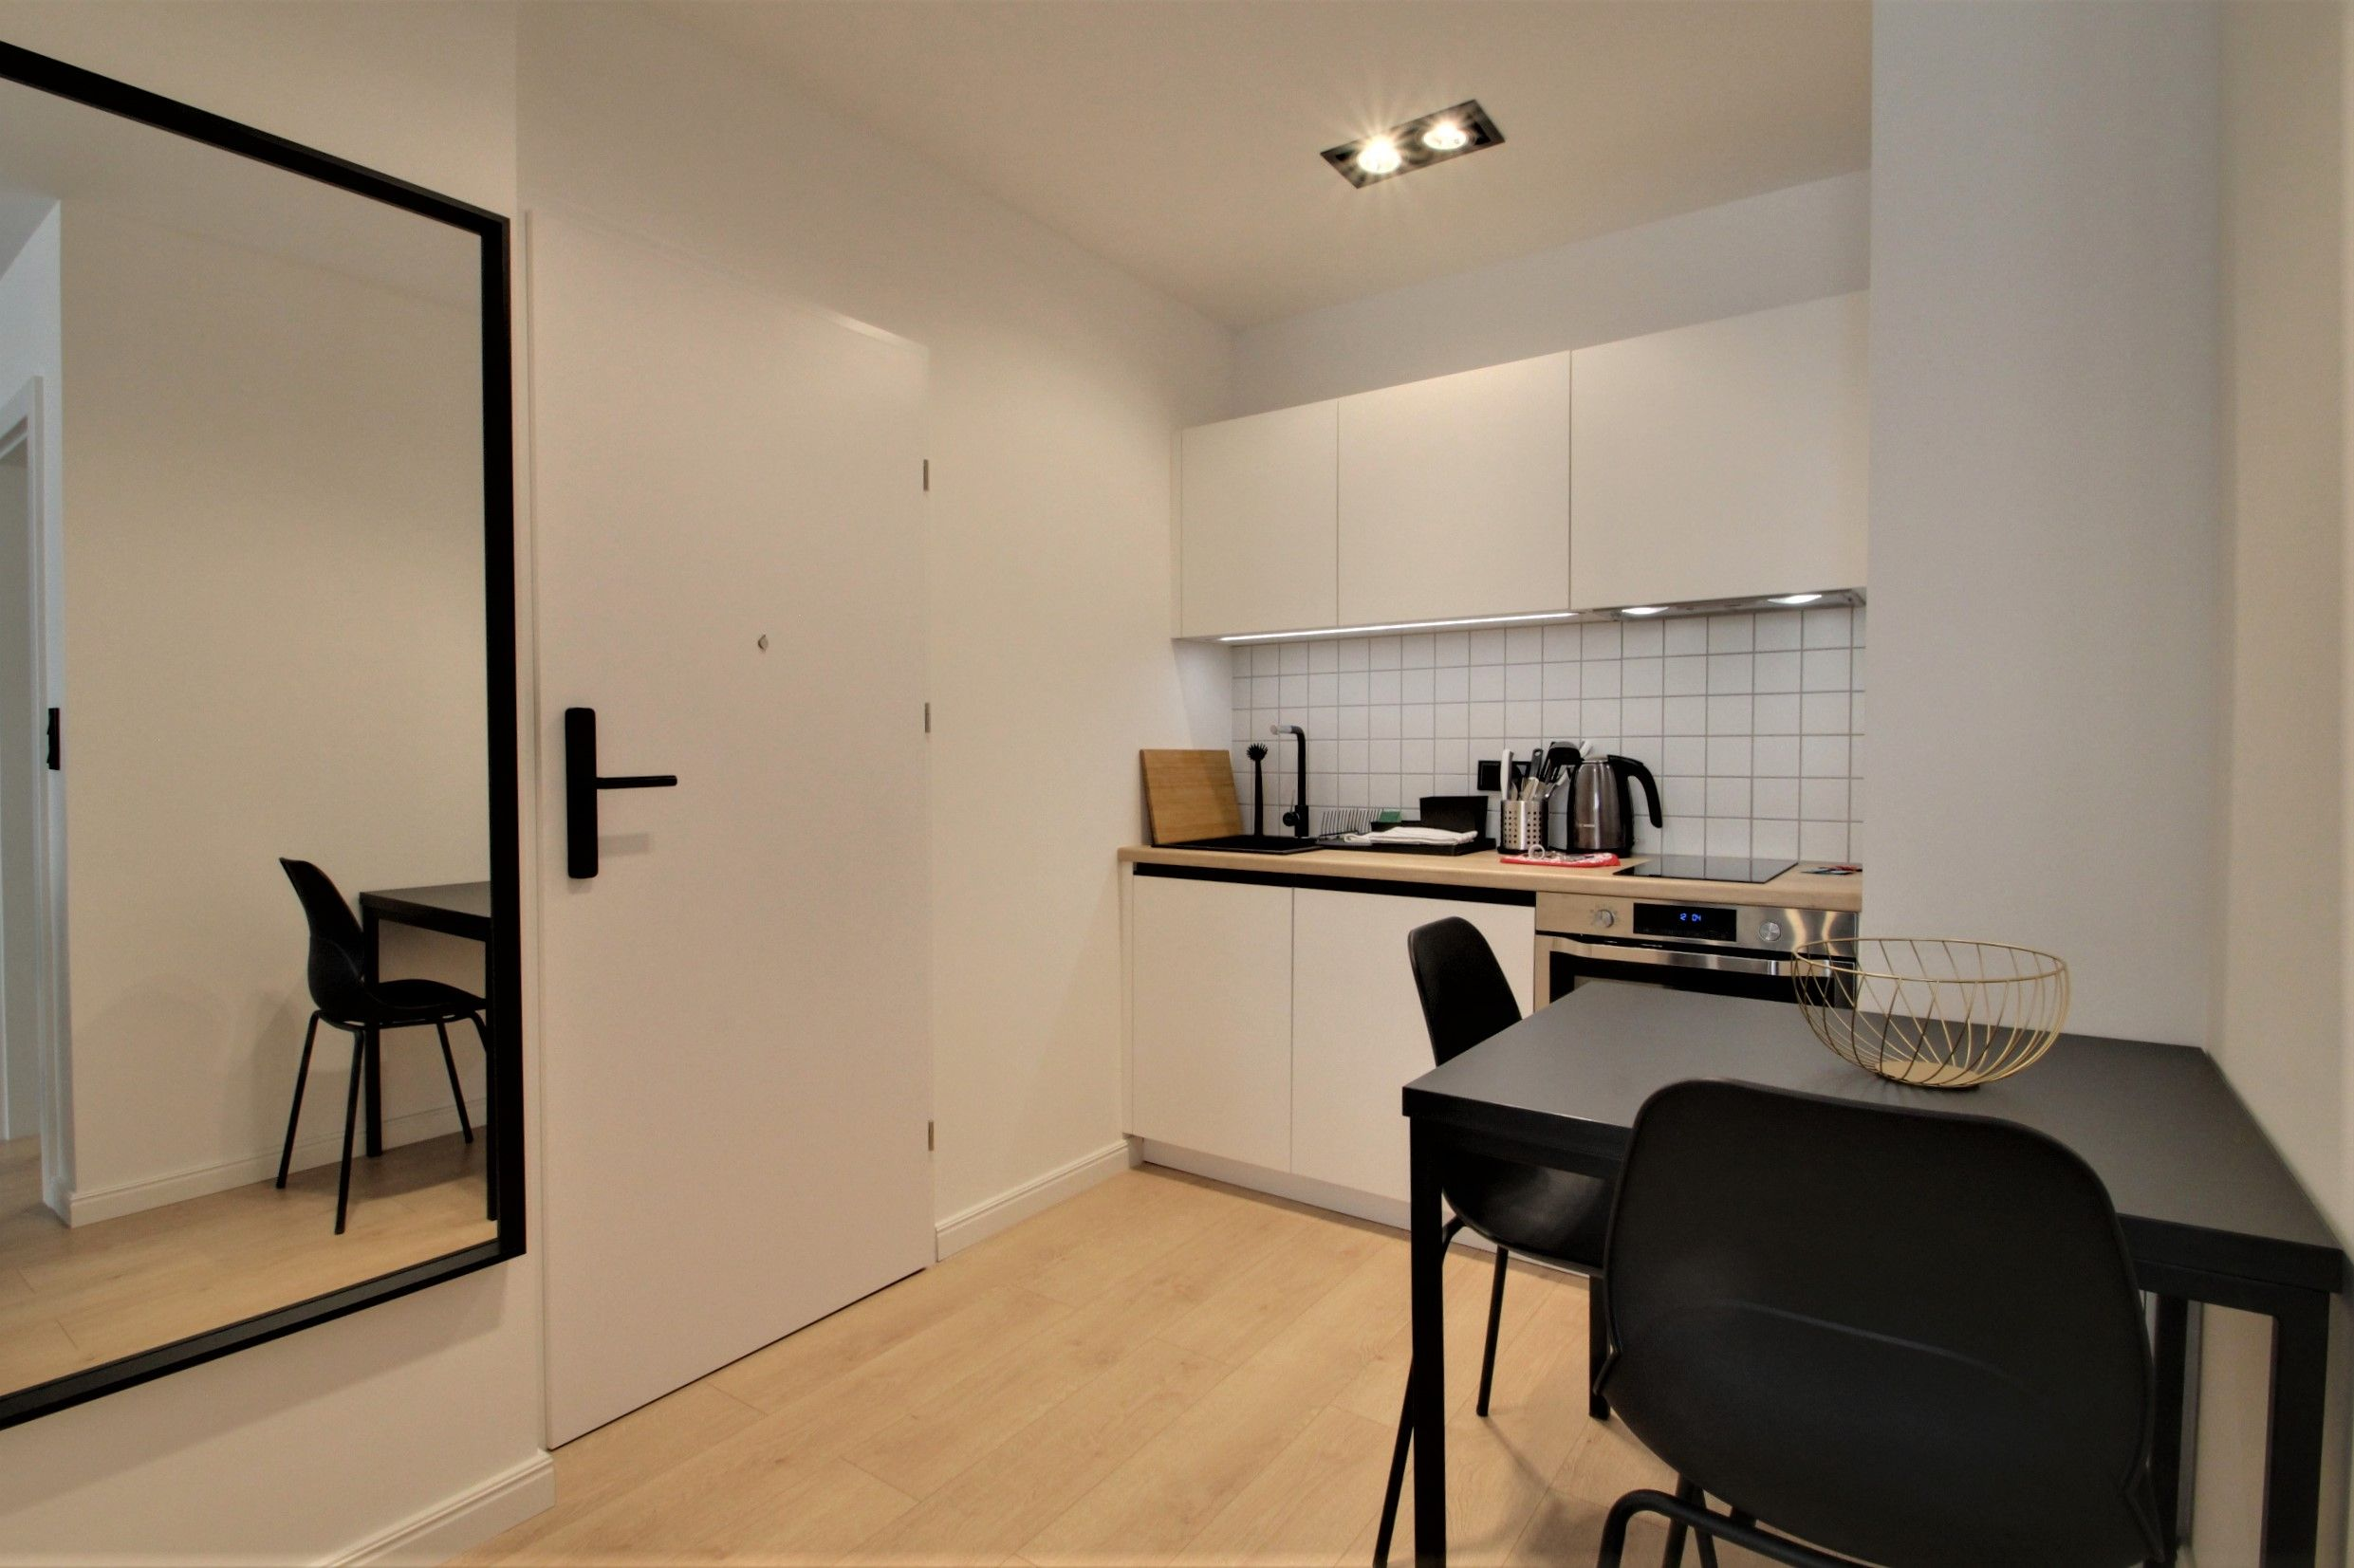 Studio - Small apartment to rent in Warsaw UPR-A-031-1